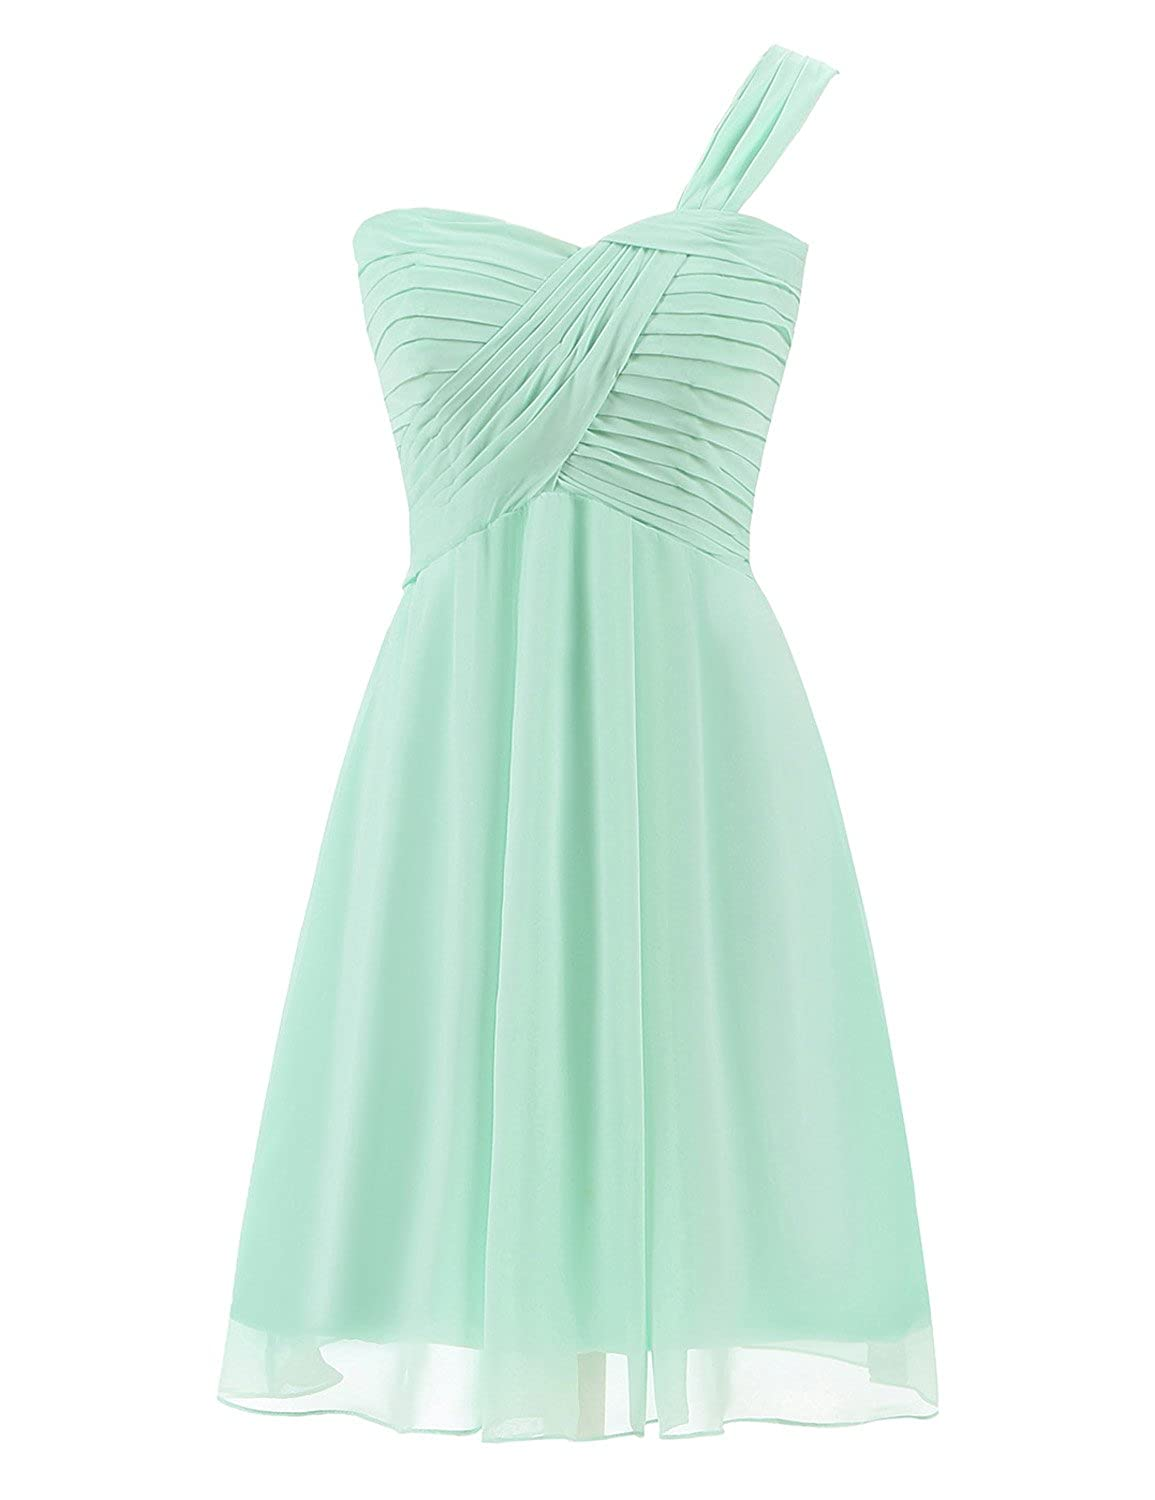 anmor Womens Bridesmaid Dresses Short Strapless Chiffon Sweetheart Prom Gowns ARSD247